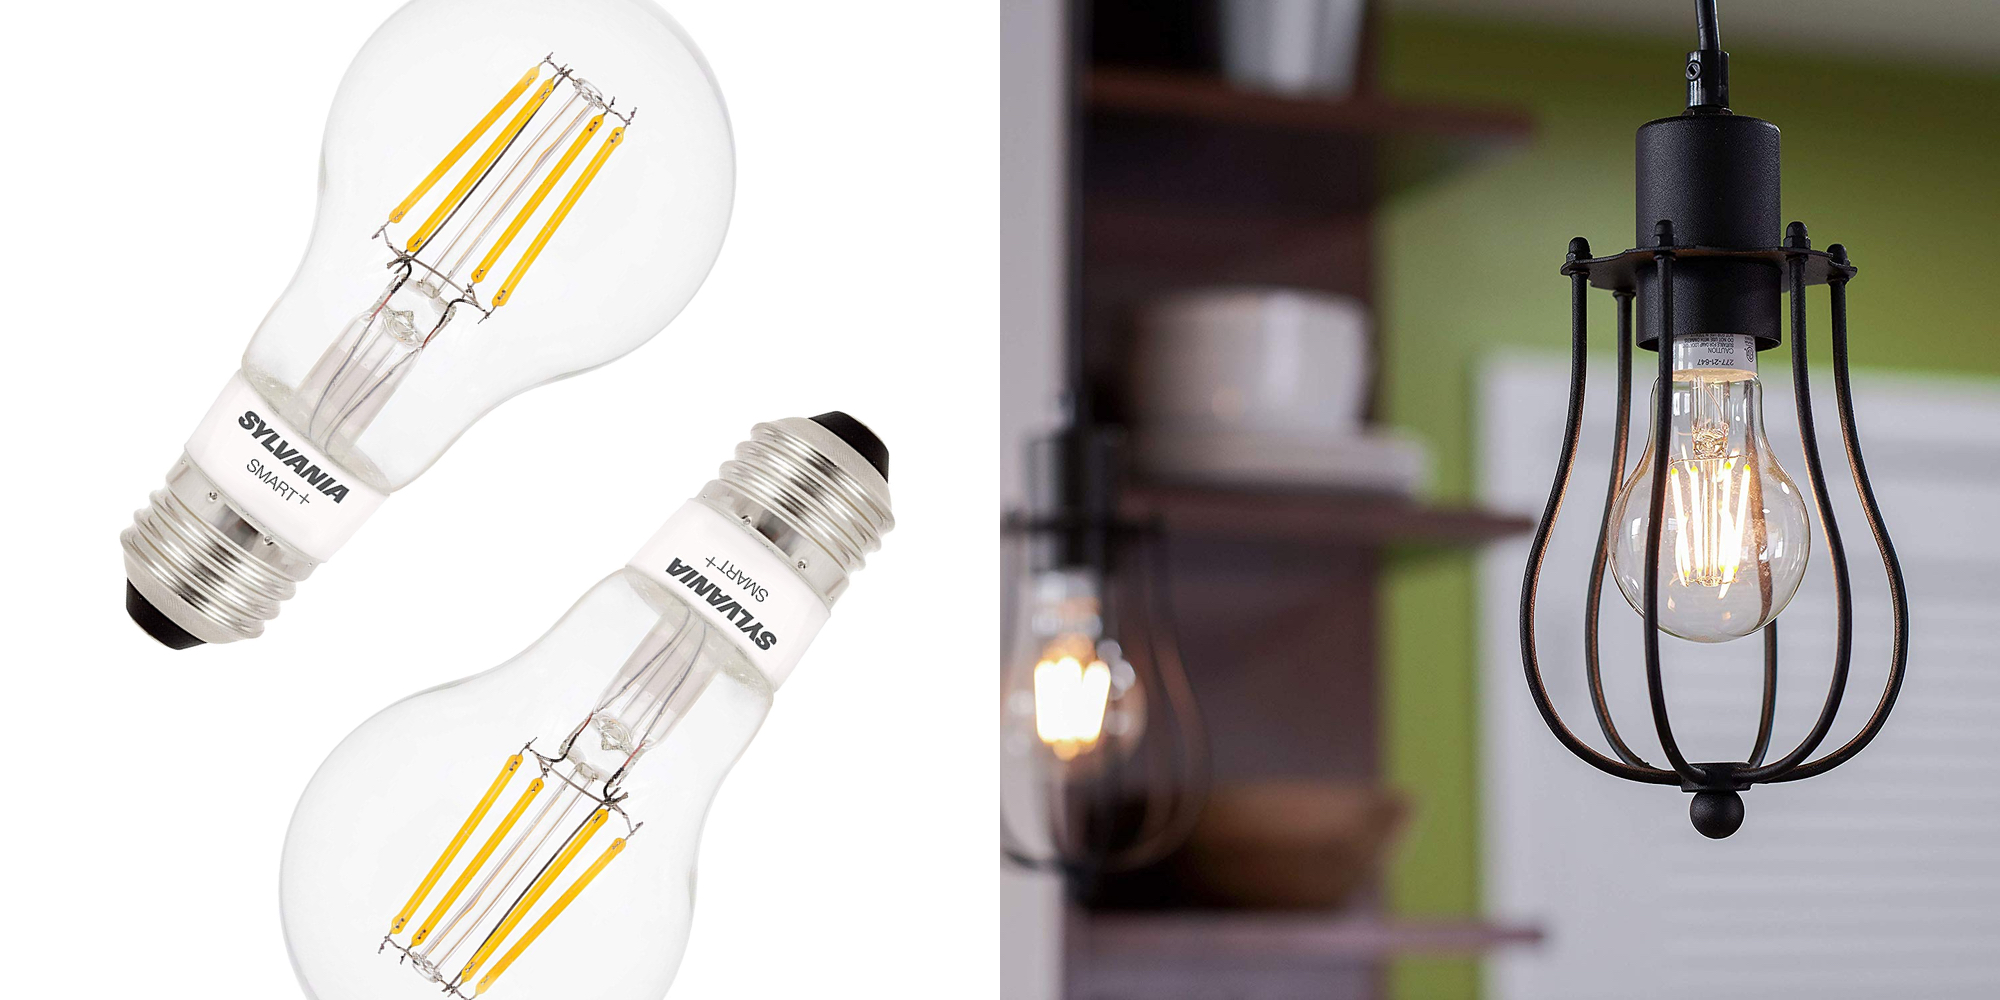 Dive into smart home lighting with Sylvania's $18 HomeKit LED Light Bulb (44% off, All-time low)